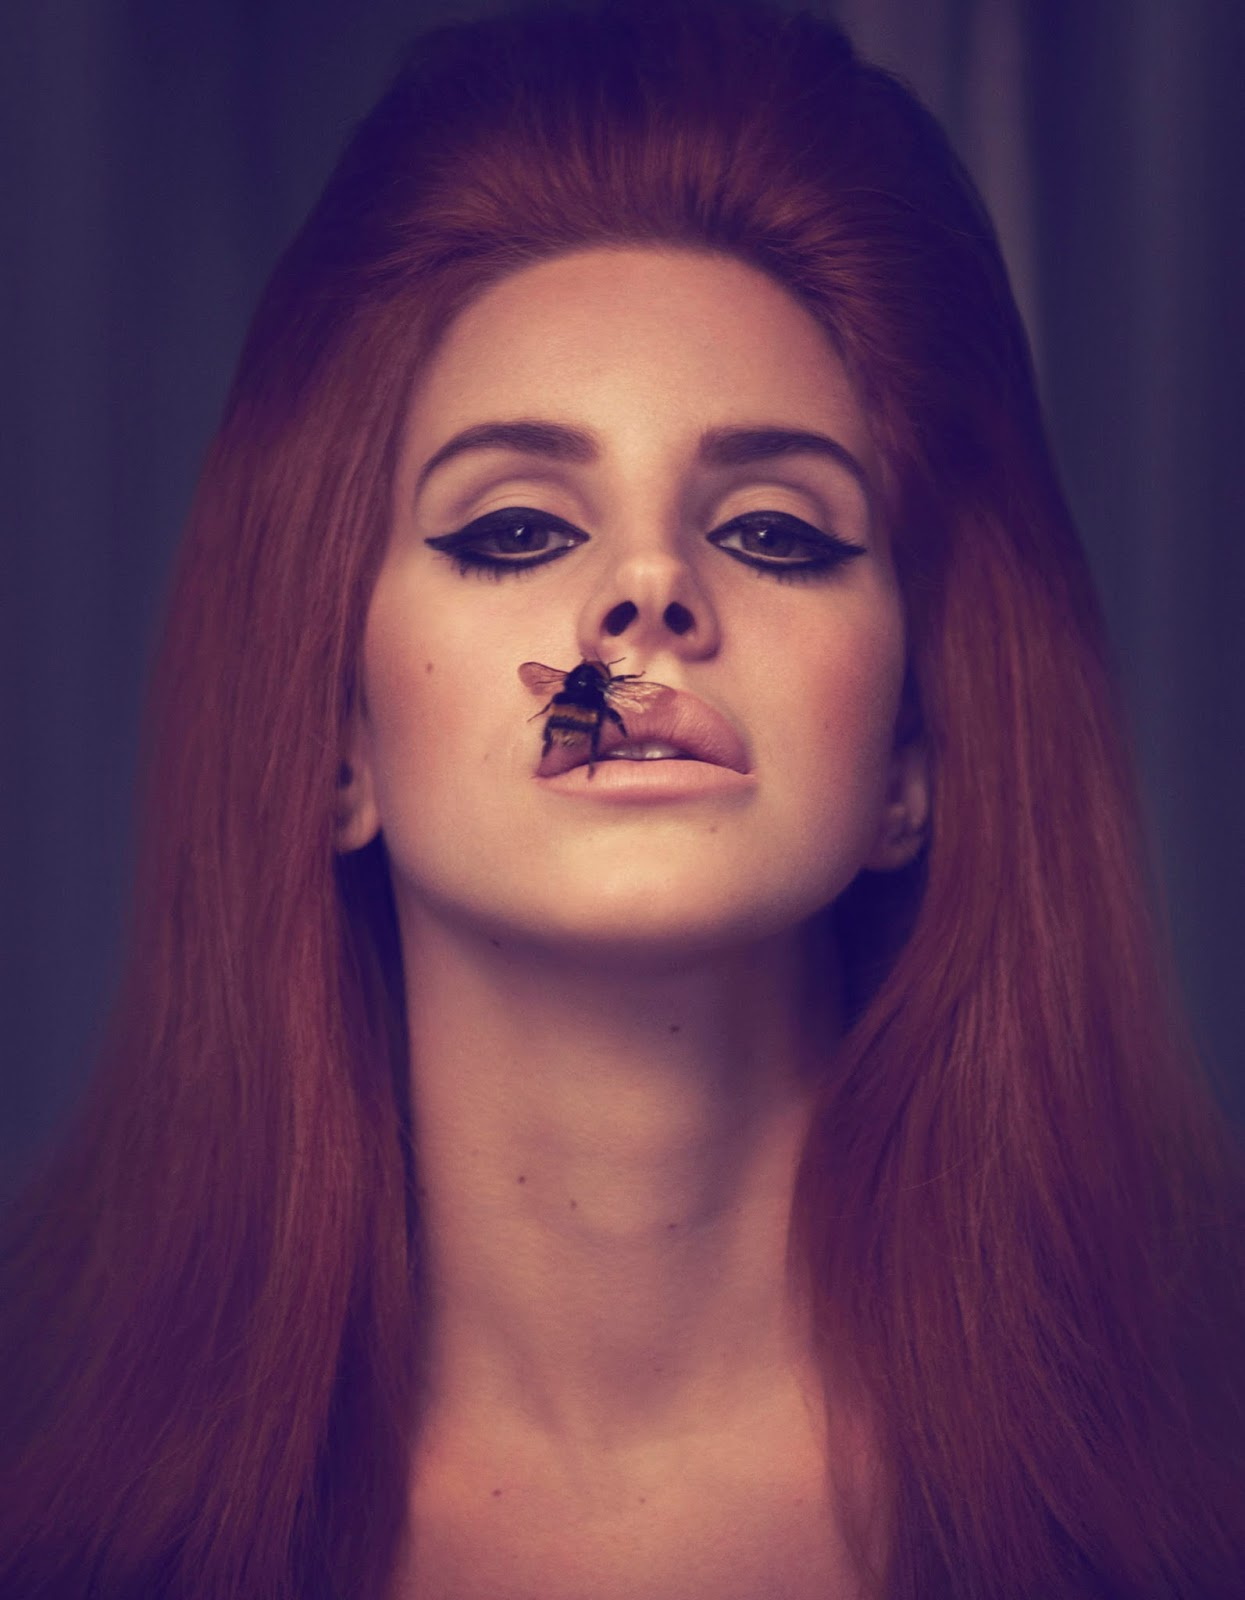 Lana Del Rey By Chris Nicholls For Fashion Magazine: Loveisspeed.......: LANA DEL REY From INTERVIEW RUSSIA